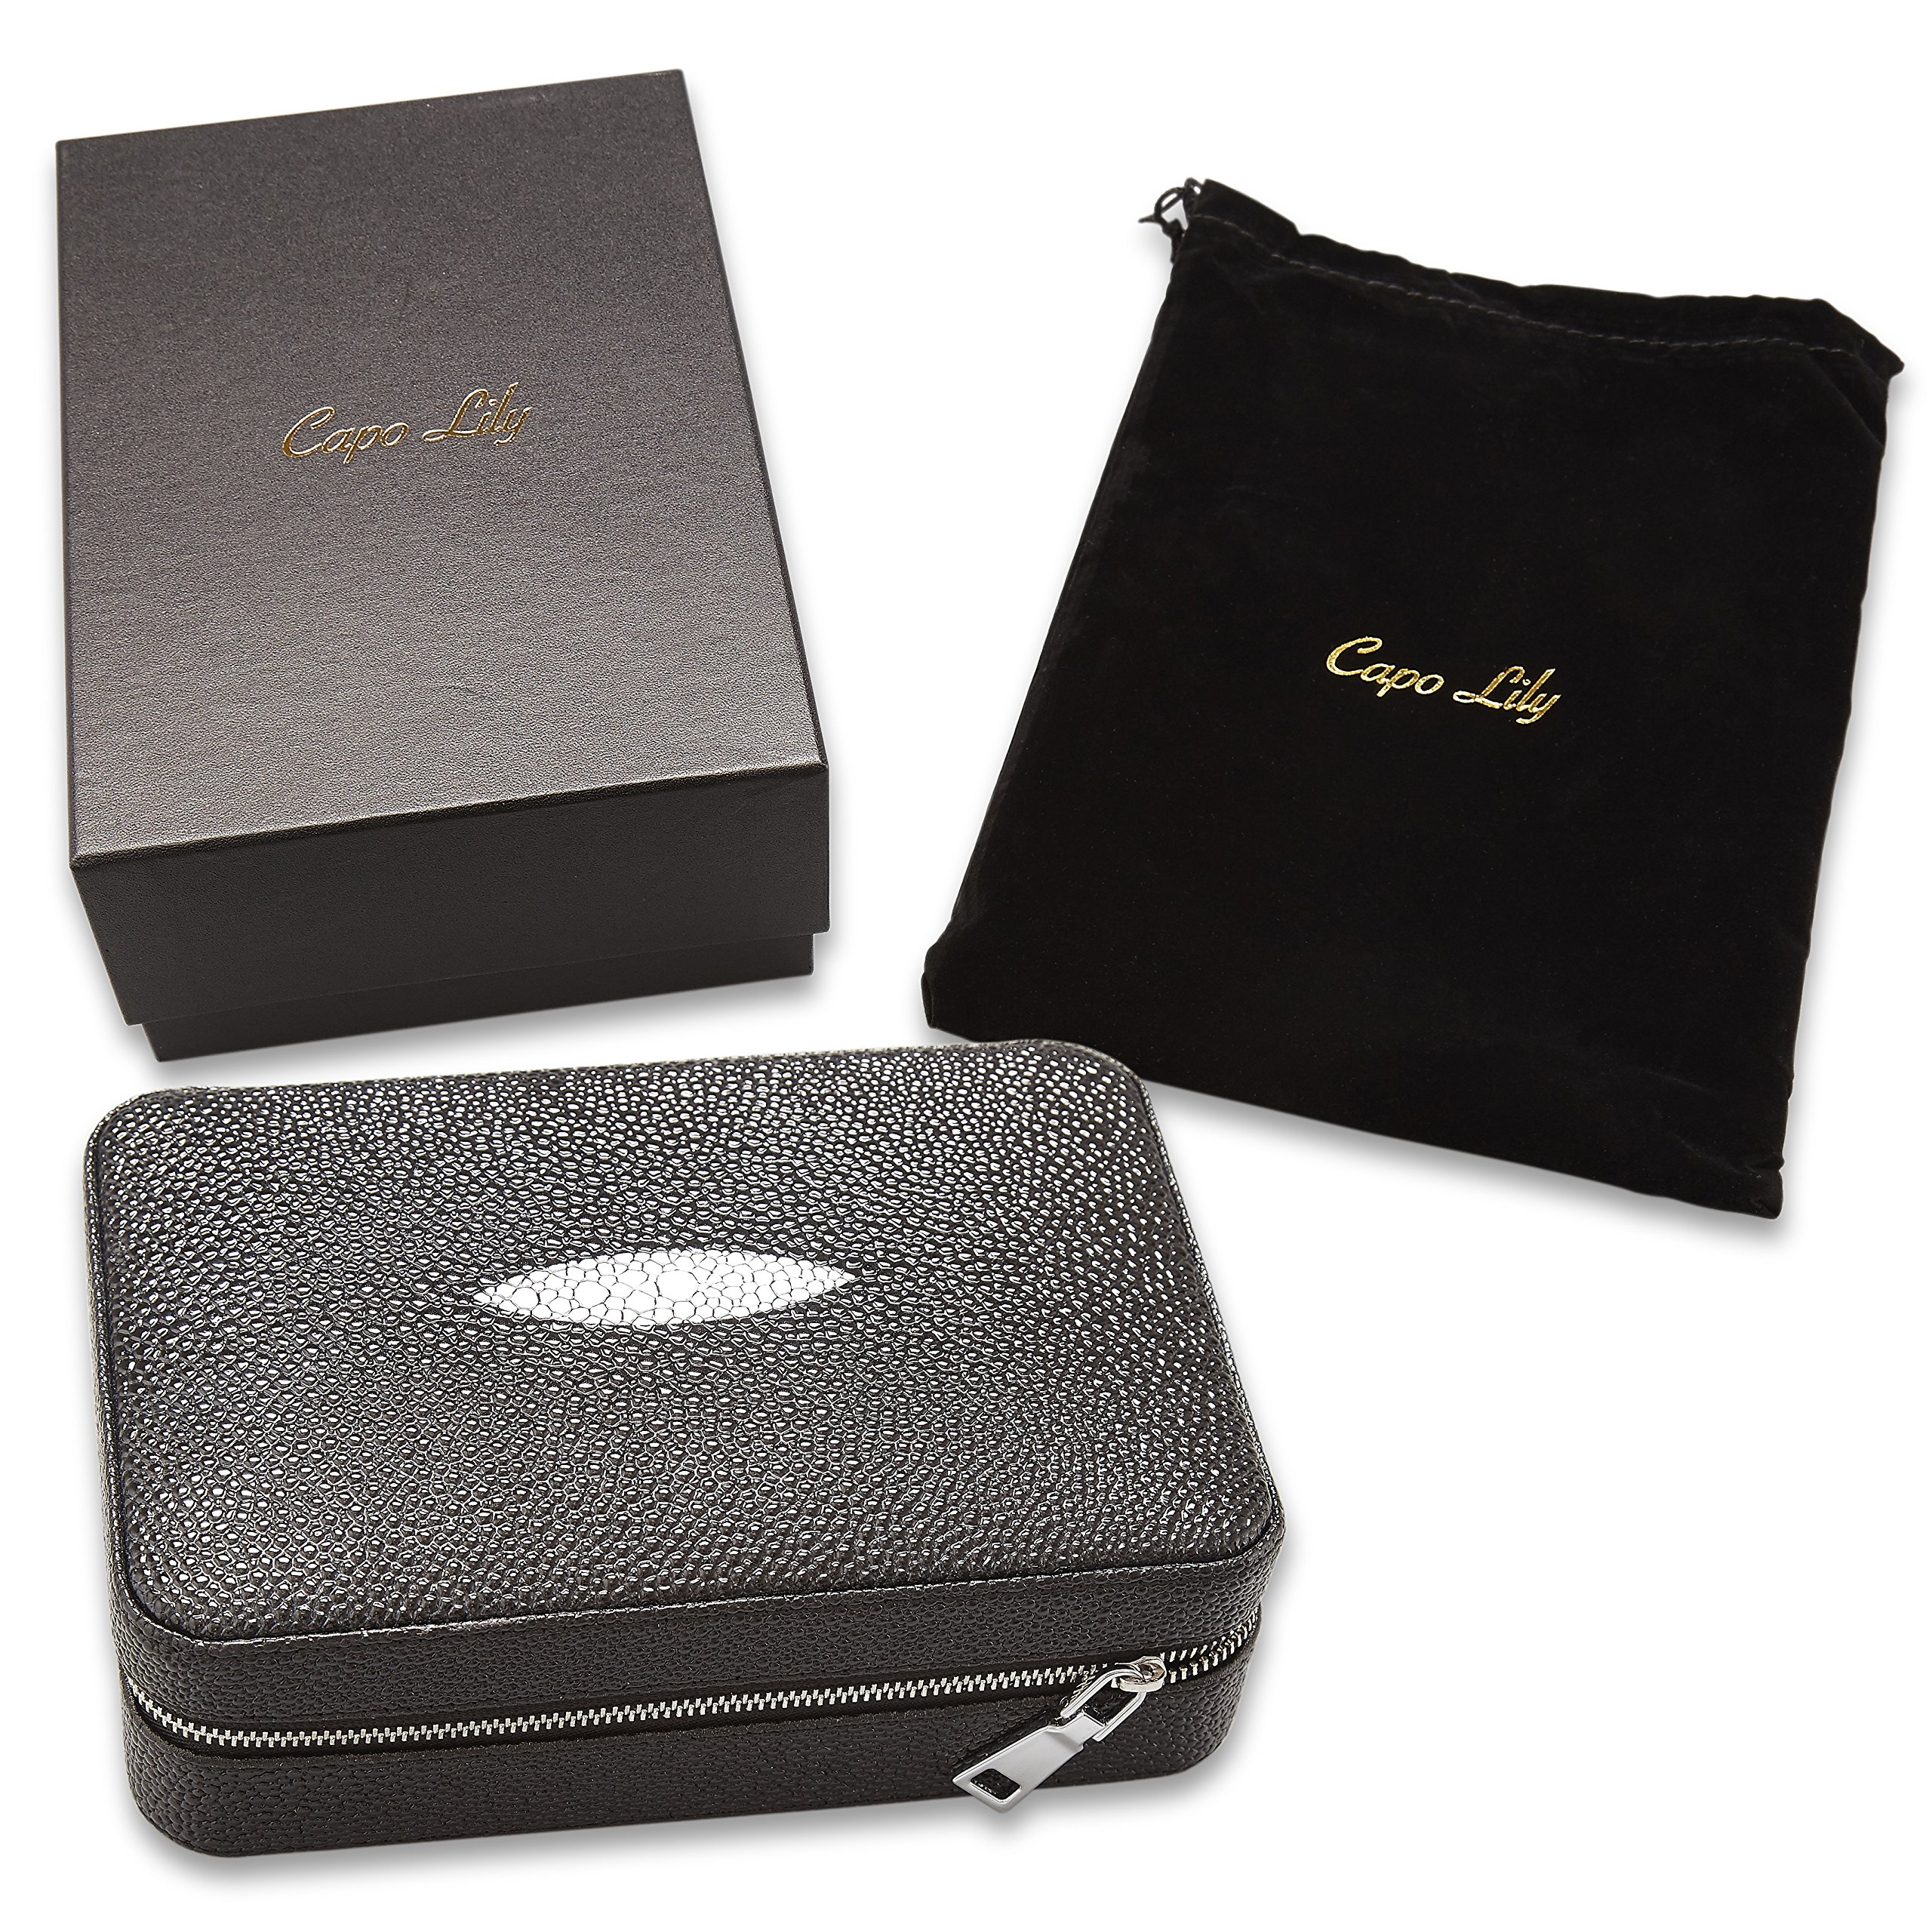 Capo Lily Cigar Humidor, Travel Portable Case with Cutter, PU Leather Wooden Box for 4 Cigars by Capo Lily (Image #3)